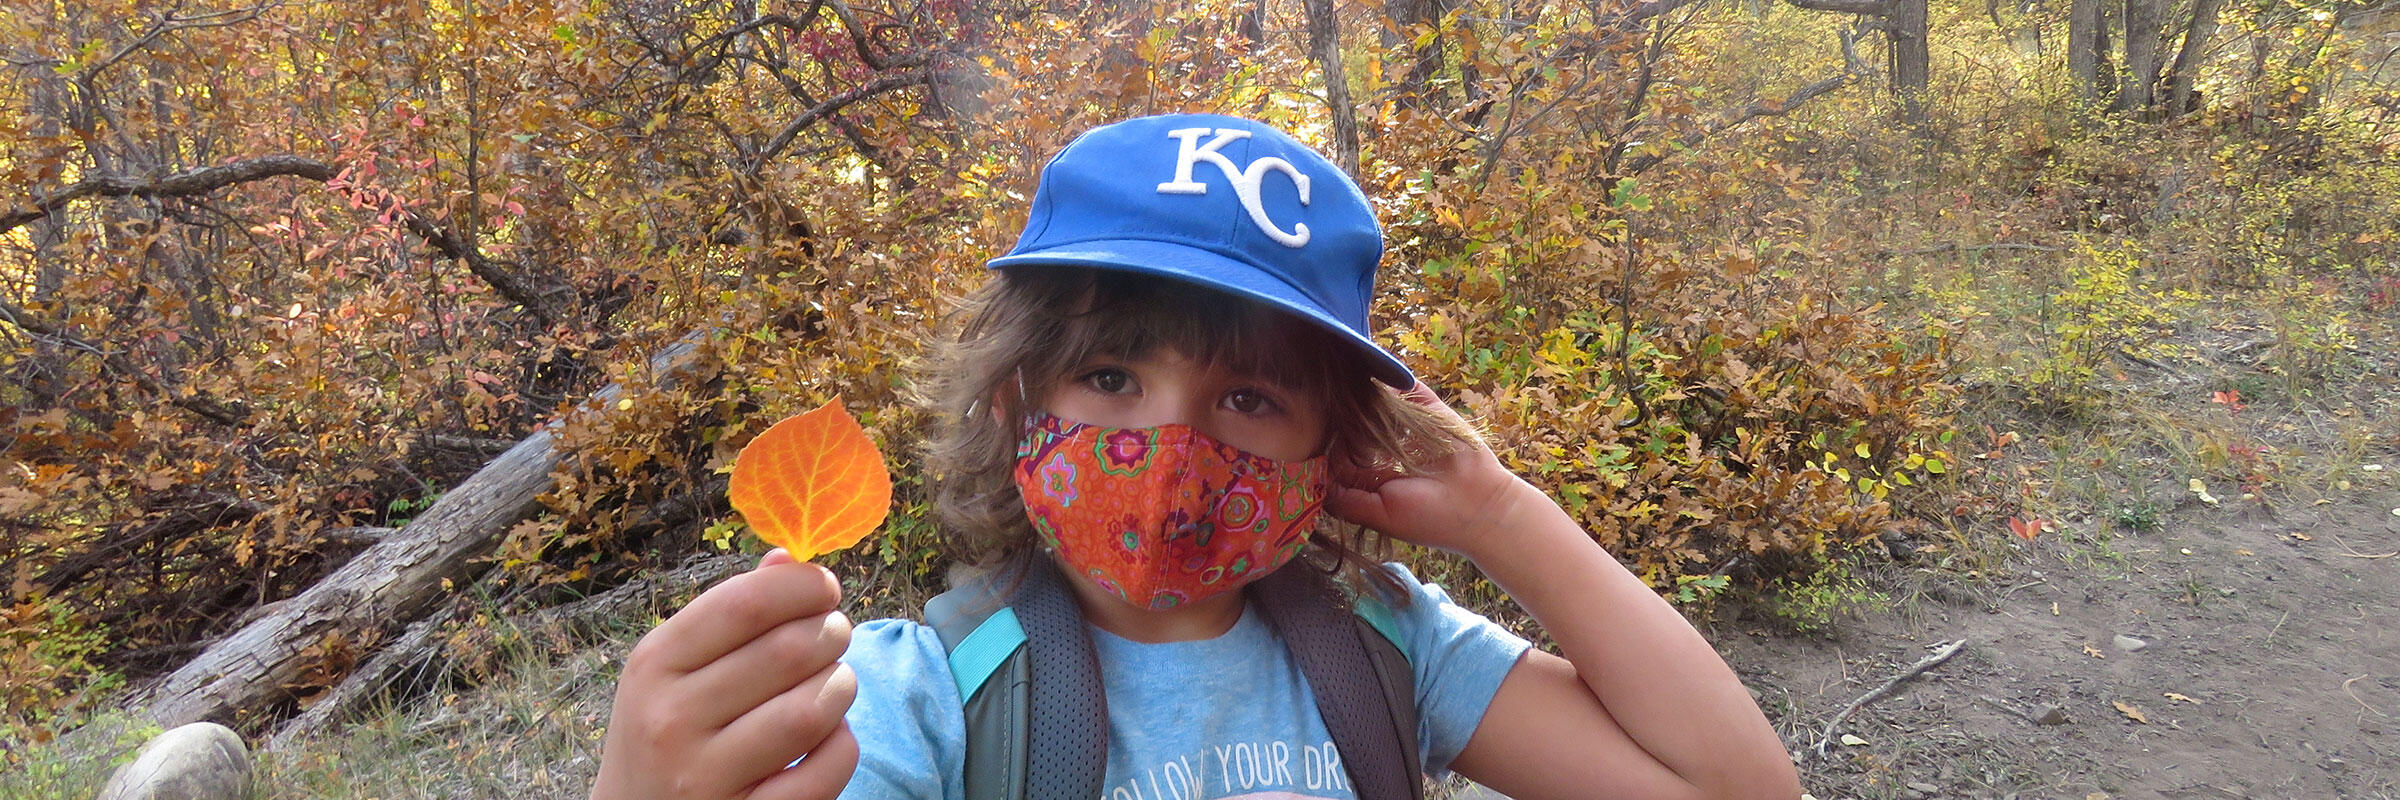 A girl holds a leaf during a Friday at Four Mile Ranch event.